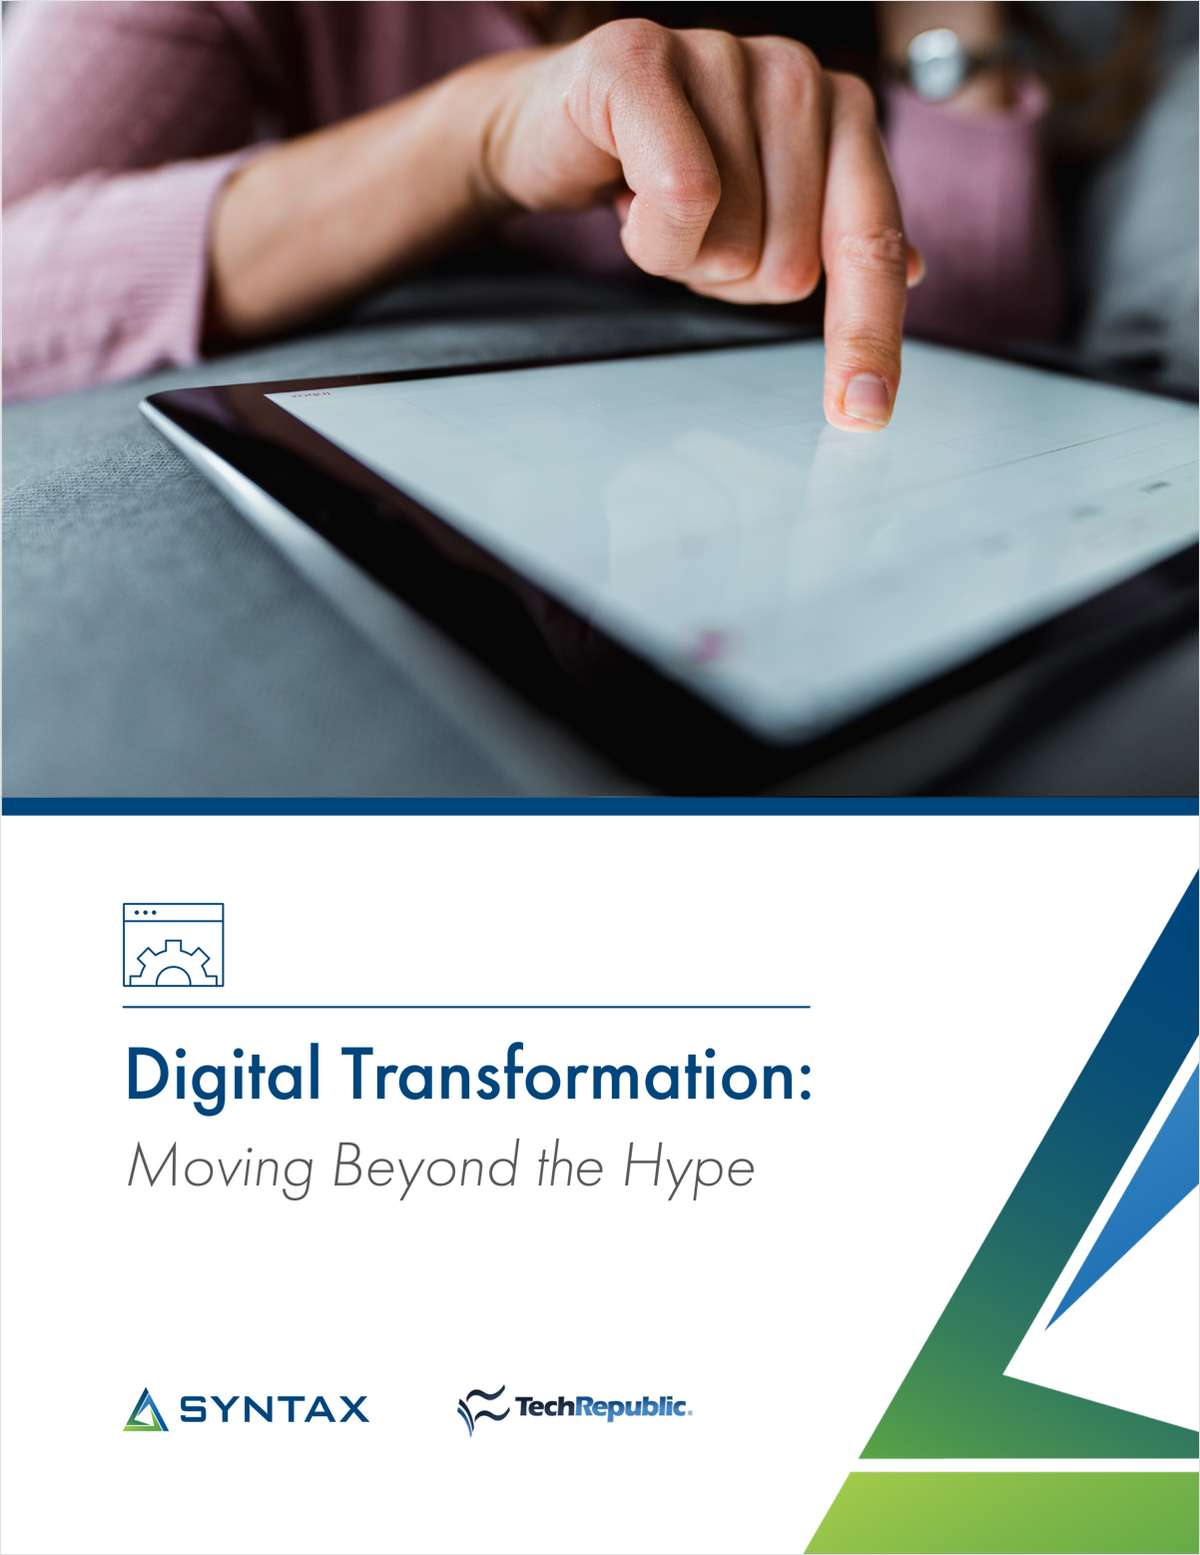 Digital Transformation: Moving Beyond the Hype